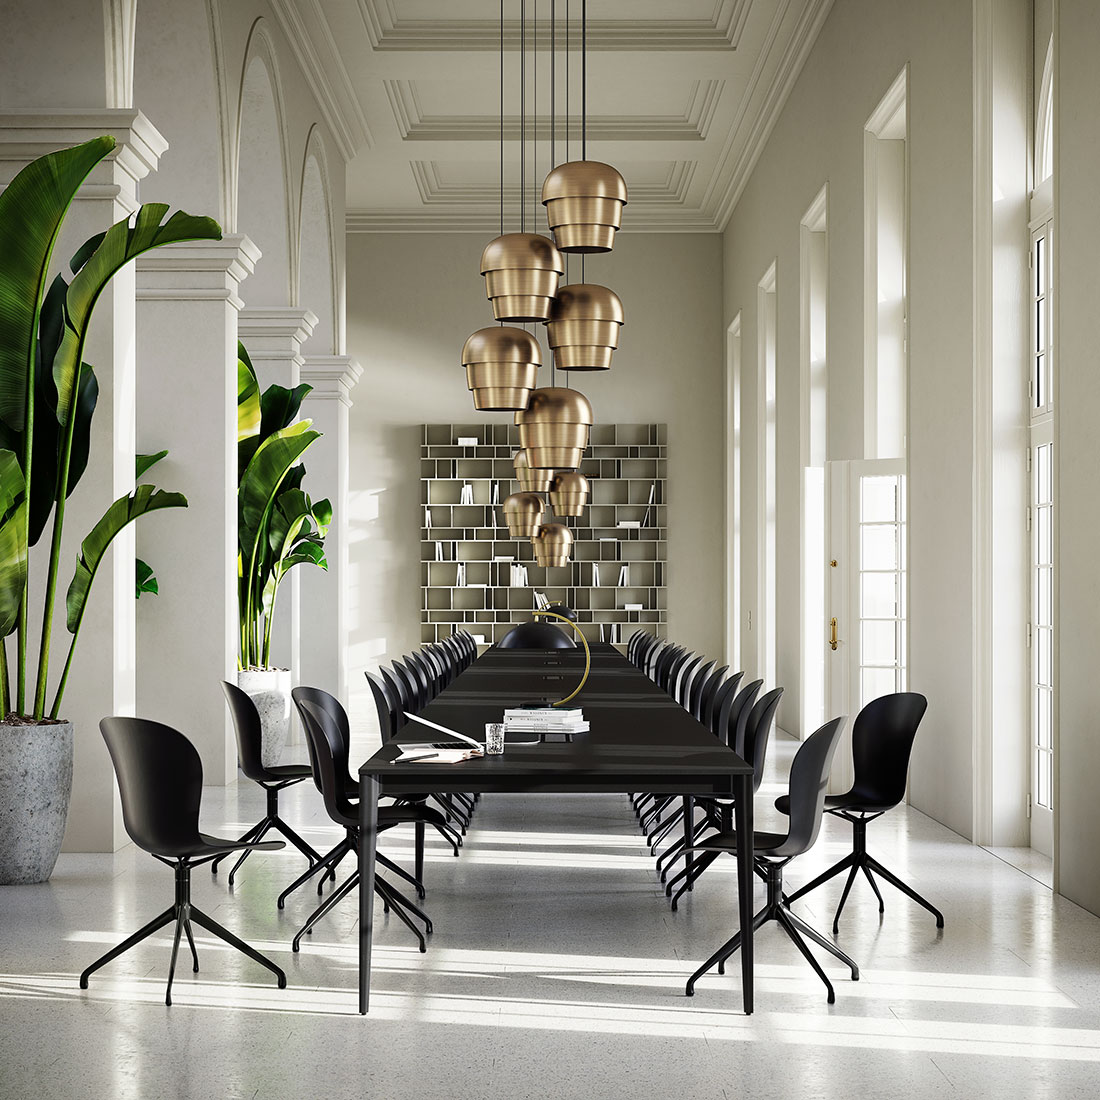 Torino conference tables and Pine Cone lamps